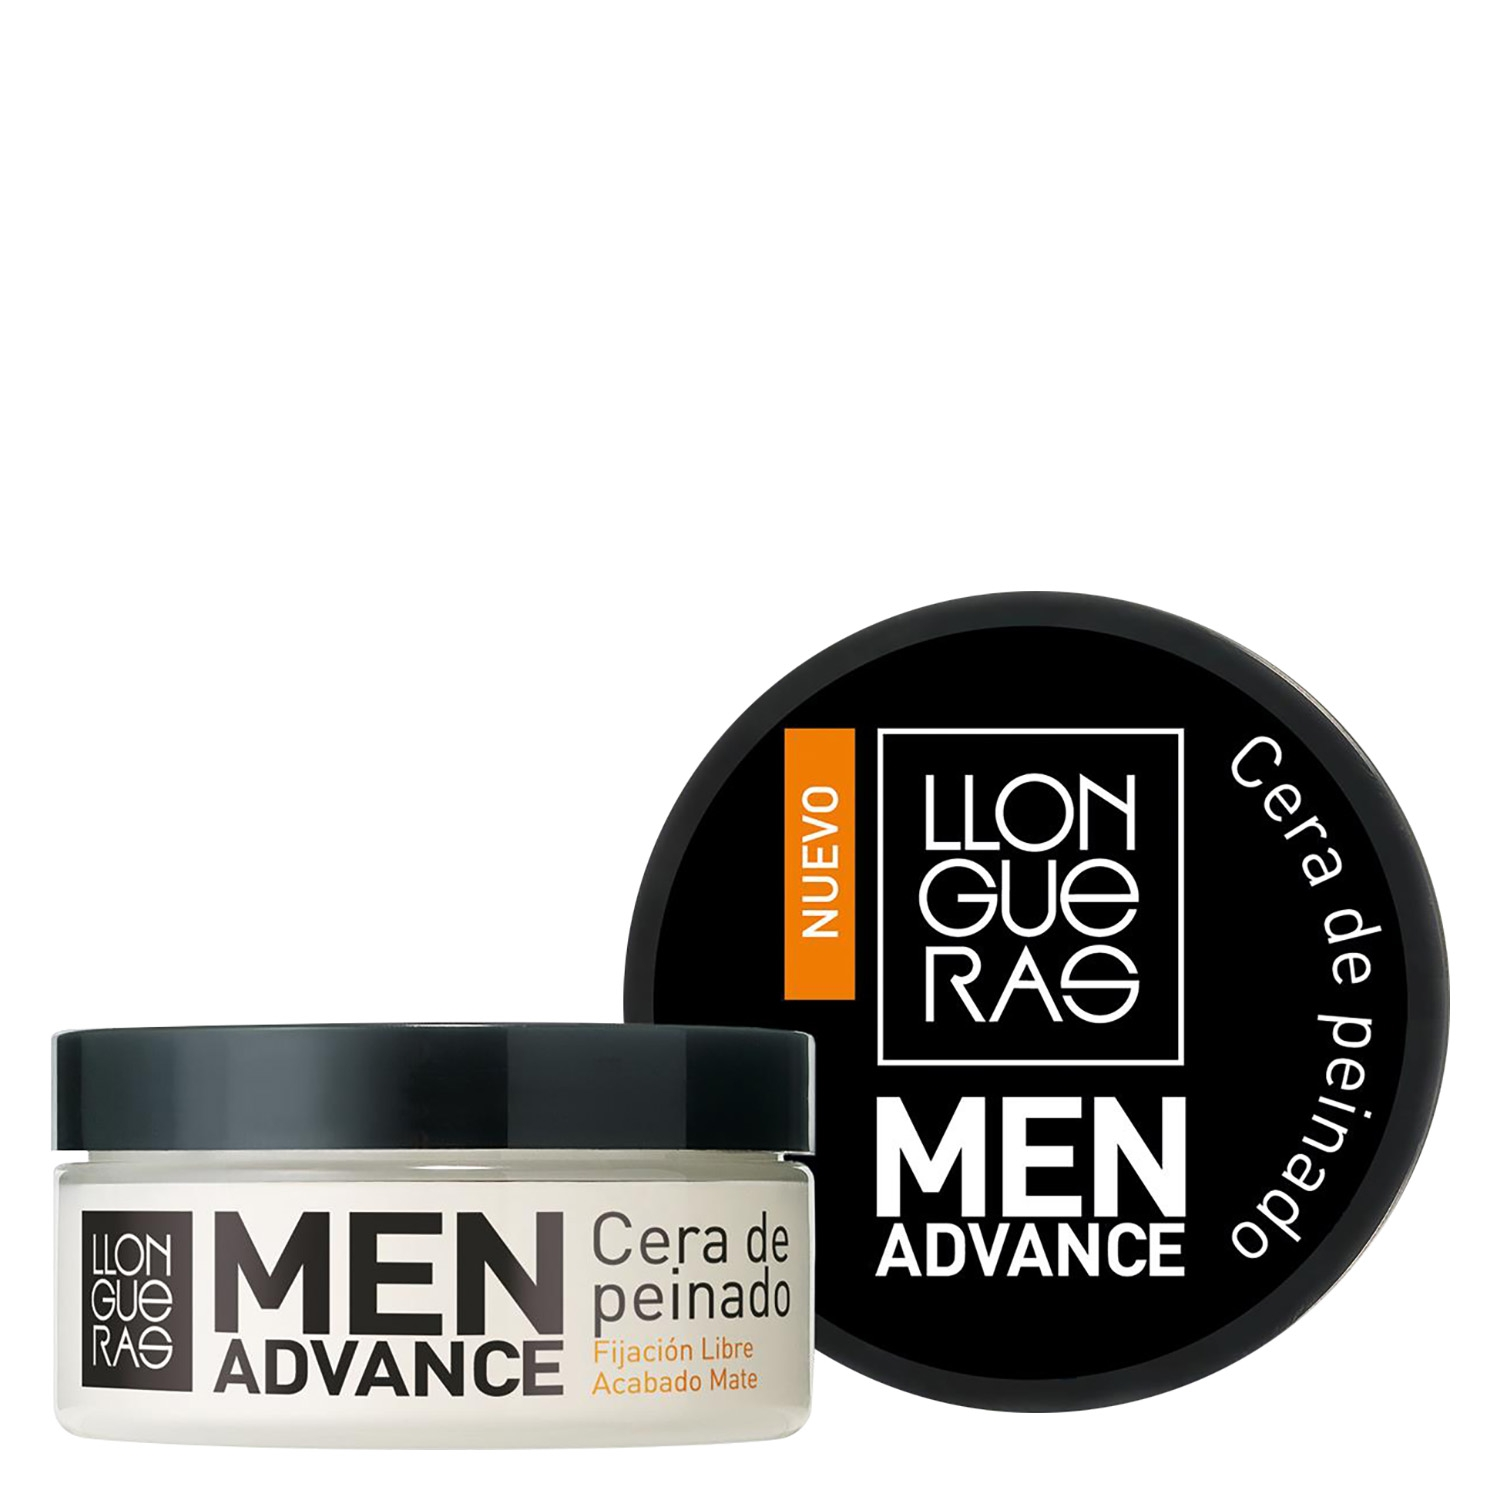 Cera de peinado men Llongueras Advance 85 ml.